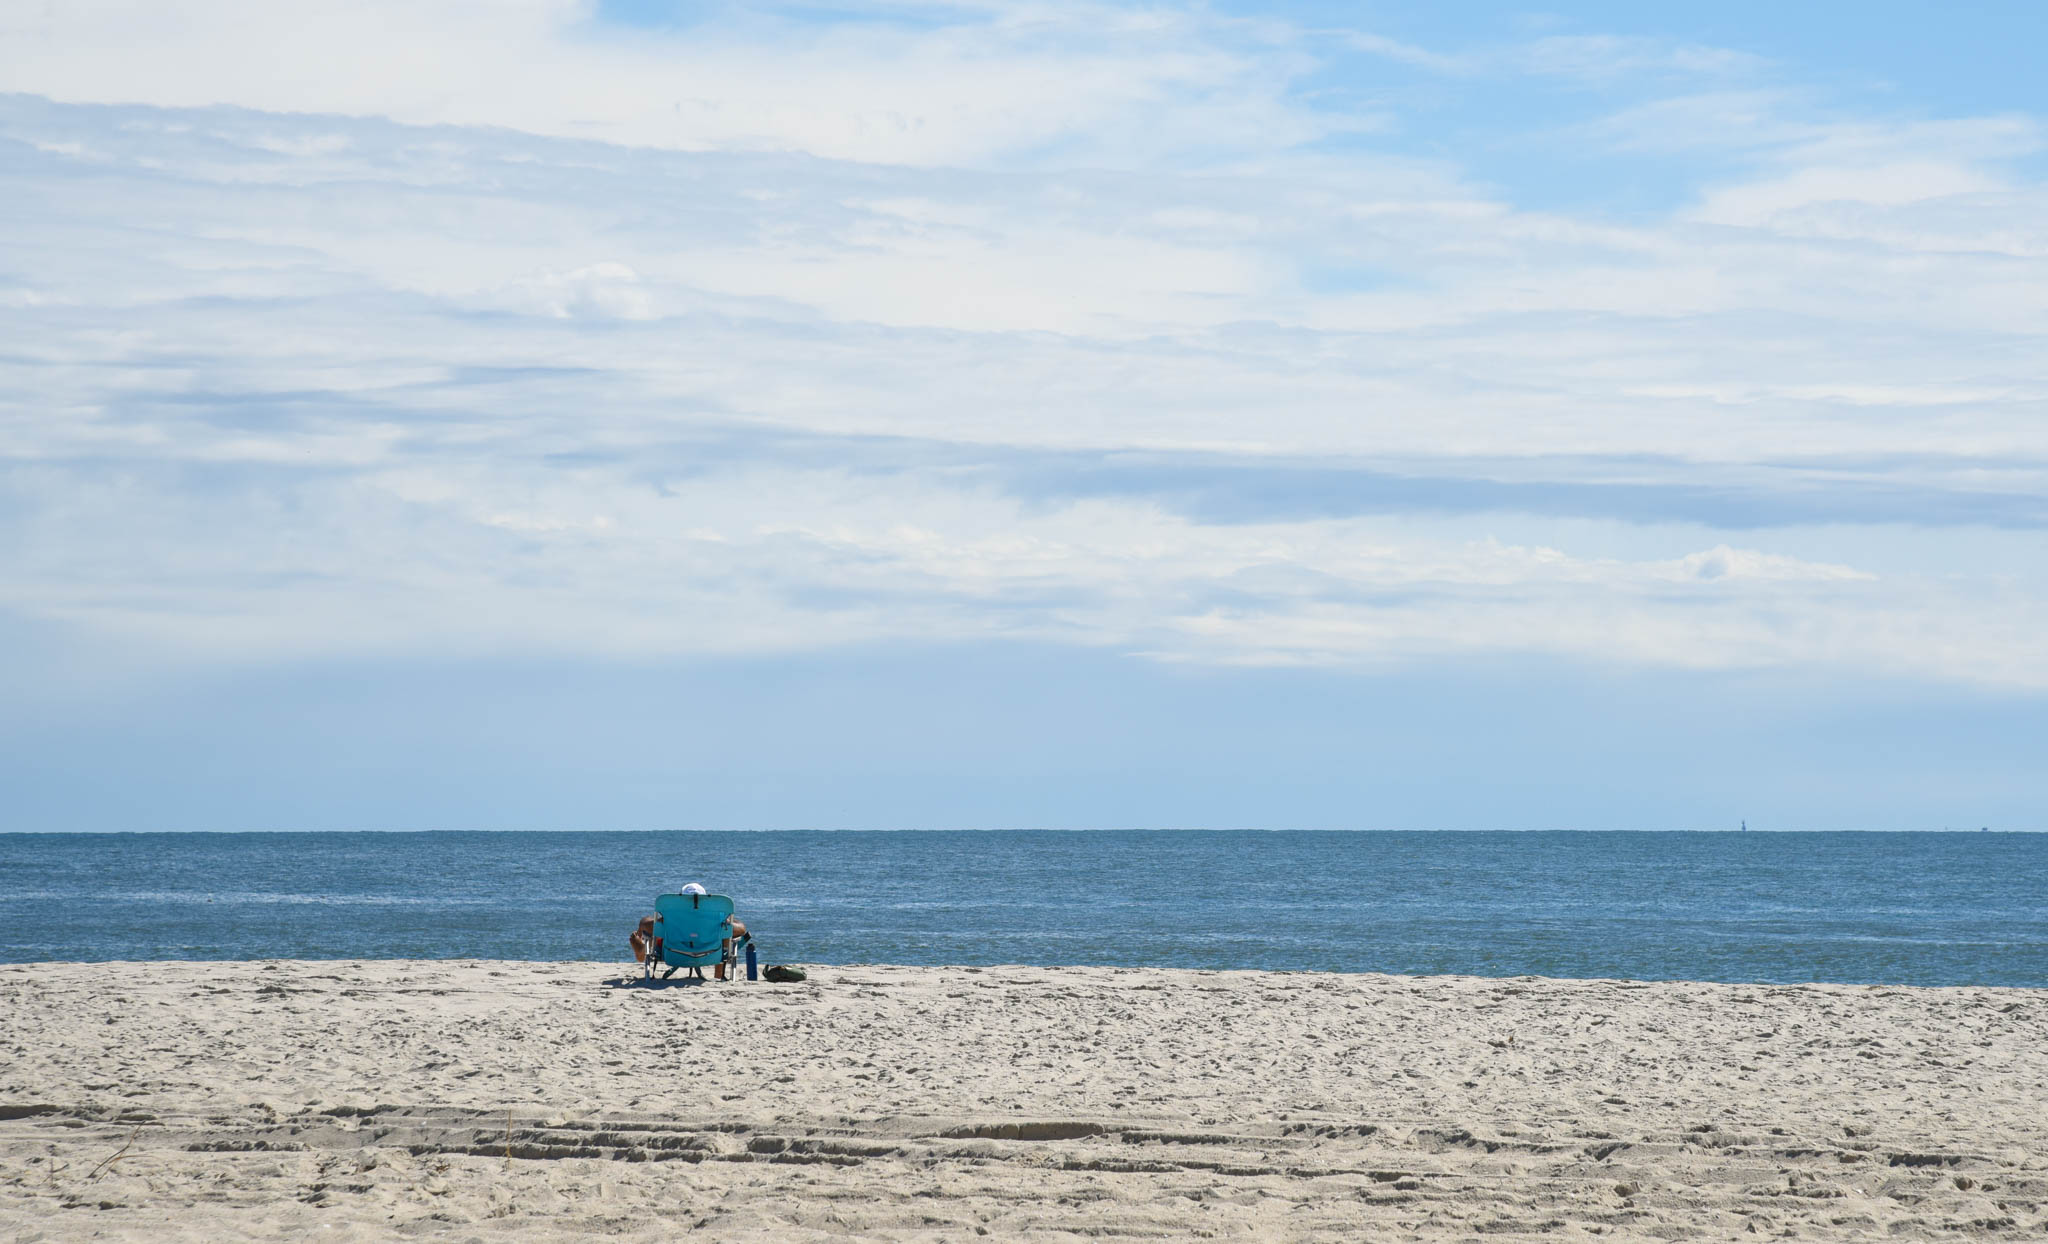 One person on the beach in a chair